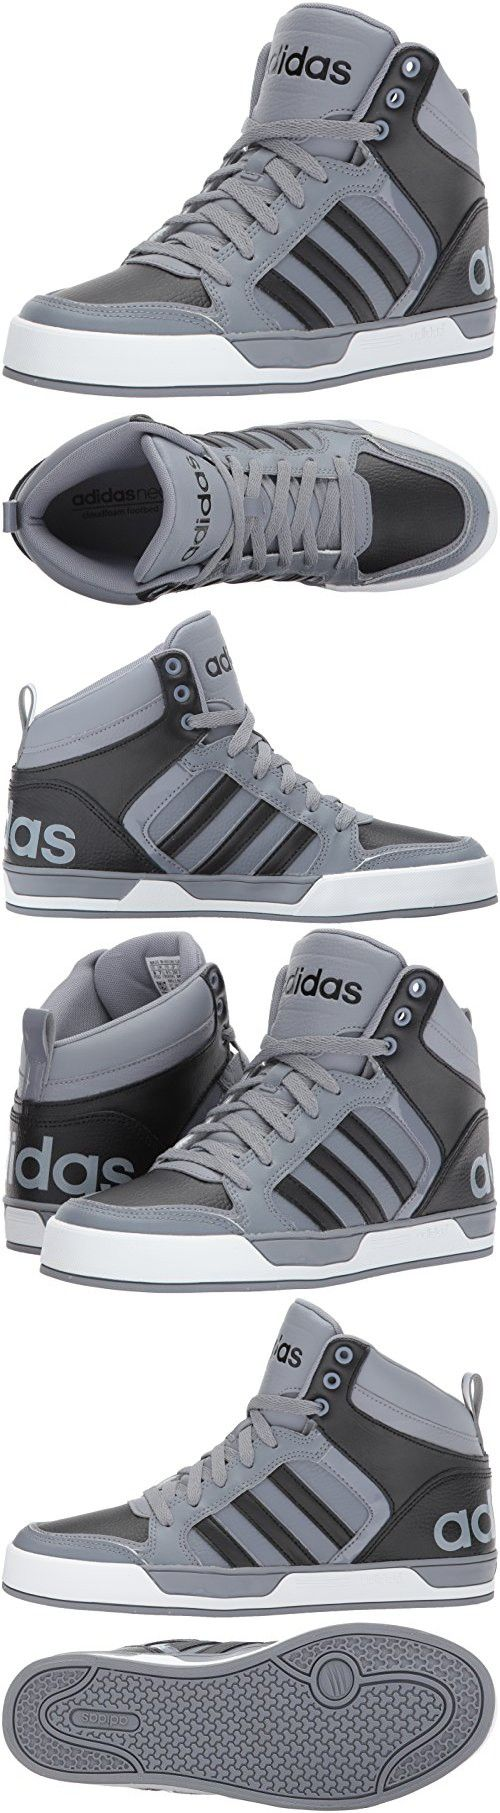 Details about Adidas Neo Cacity Mid Men's Trainers Hi Top Basketball Shoes Black